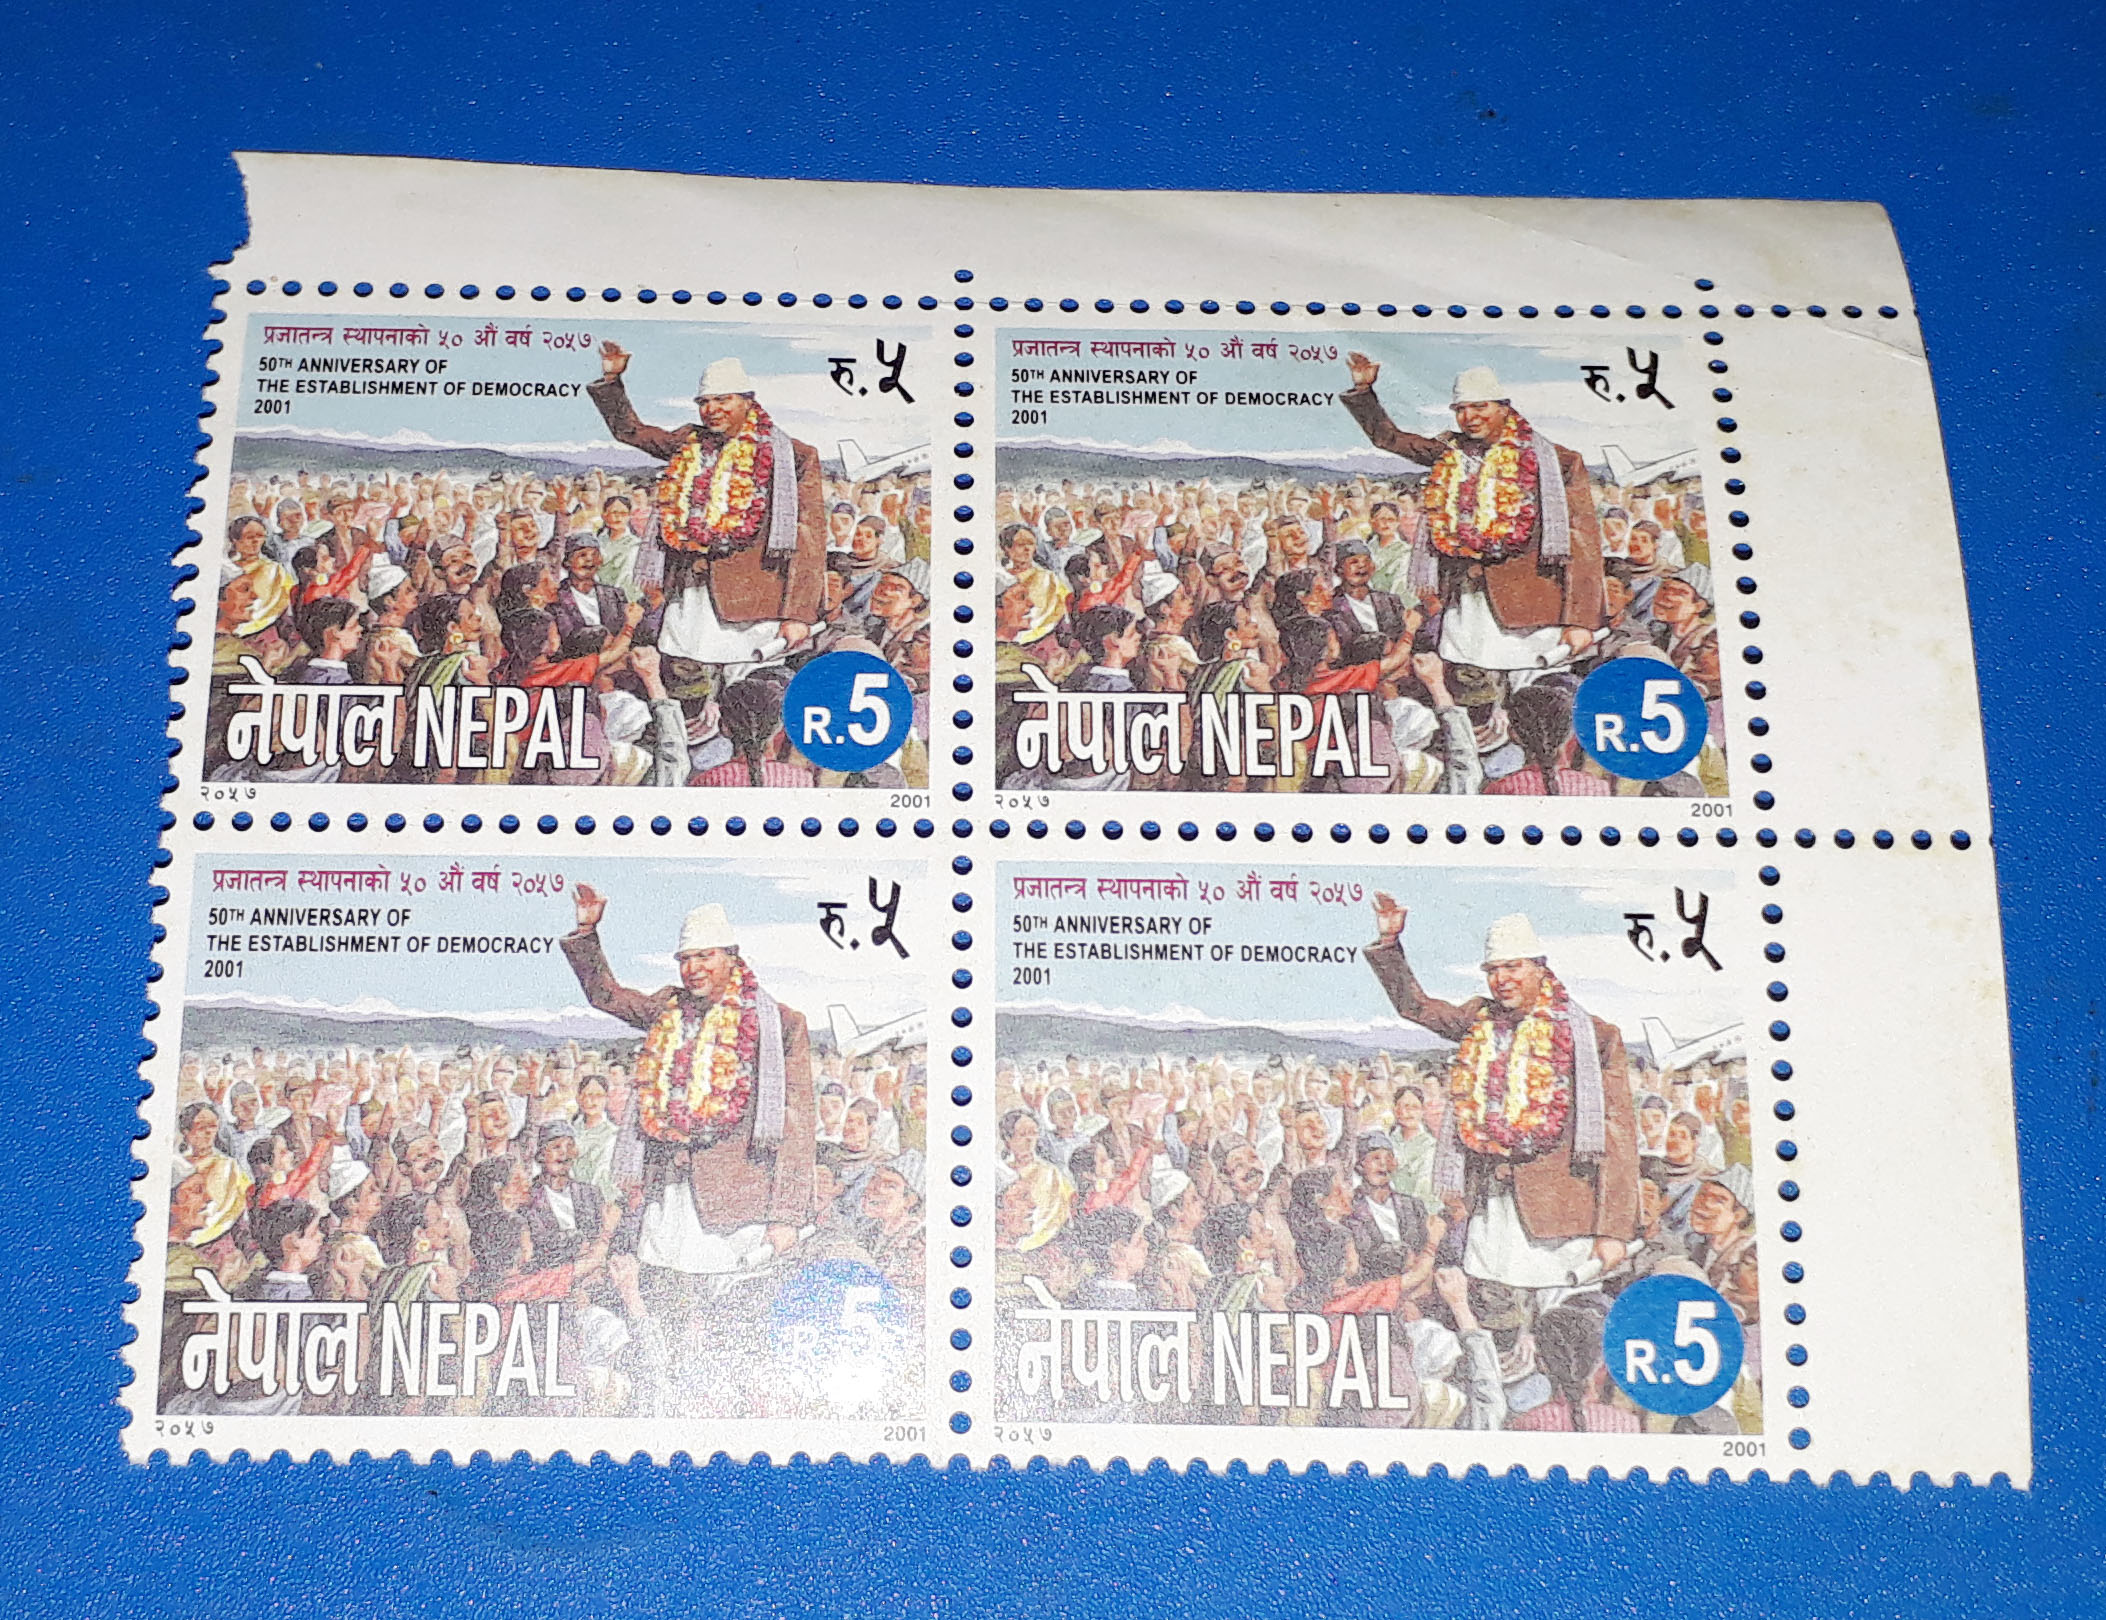 NEPAL KING STAMP - BLOCK OF 4 - MNH 5 Rupees STAMP